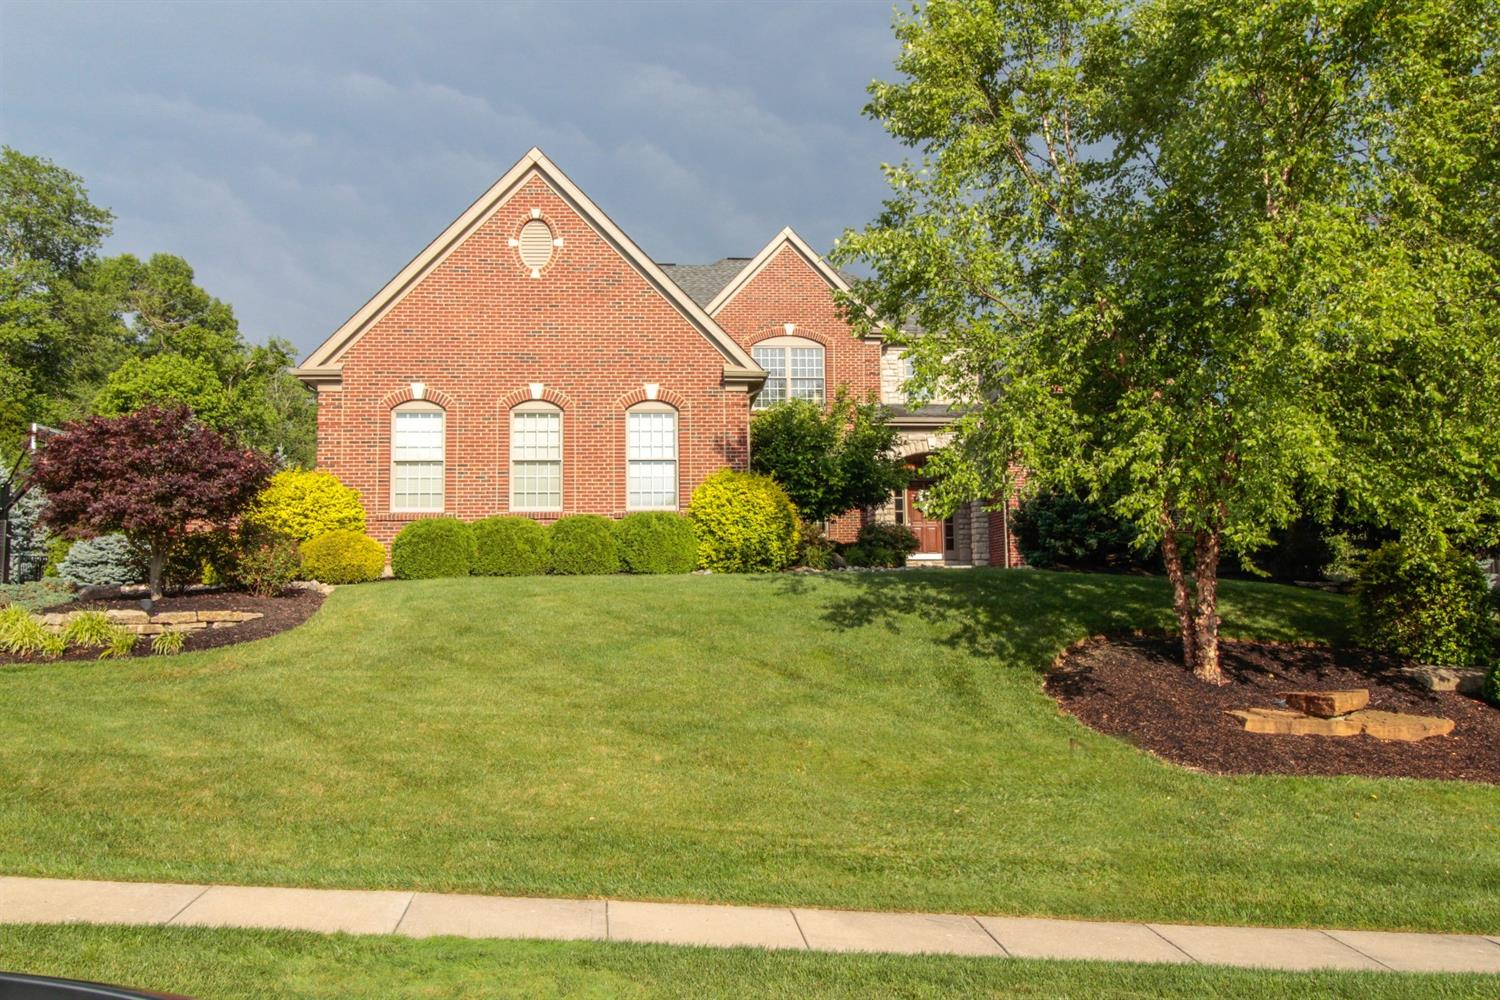 2772 High Pointe, Anderson Twp, OH 45244